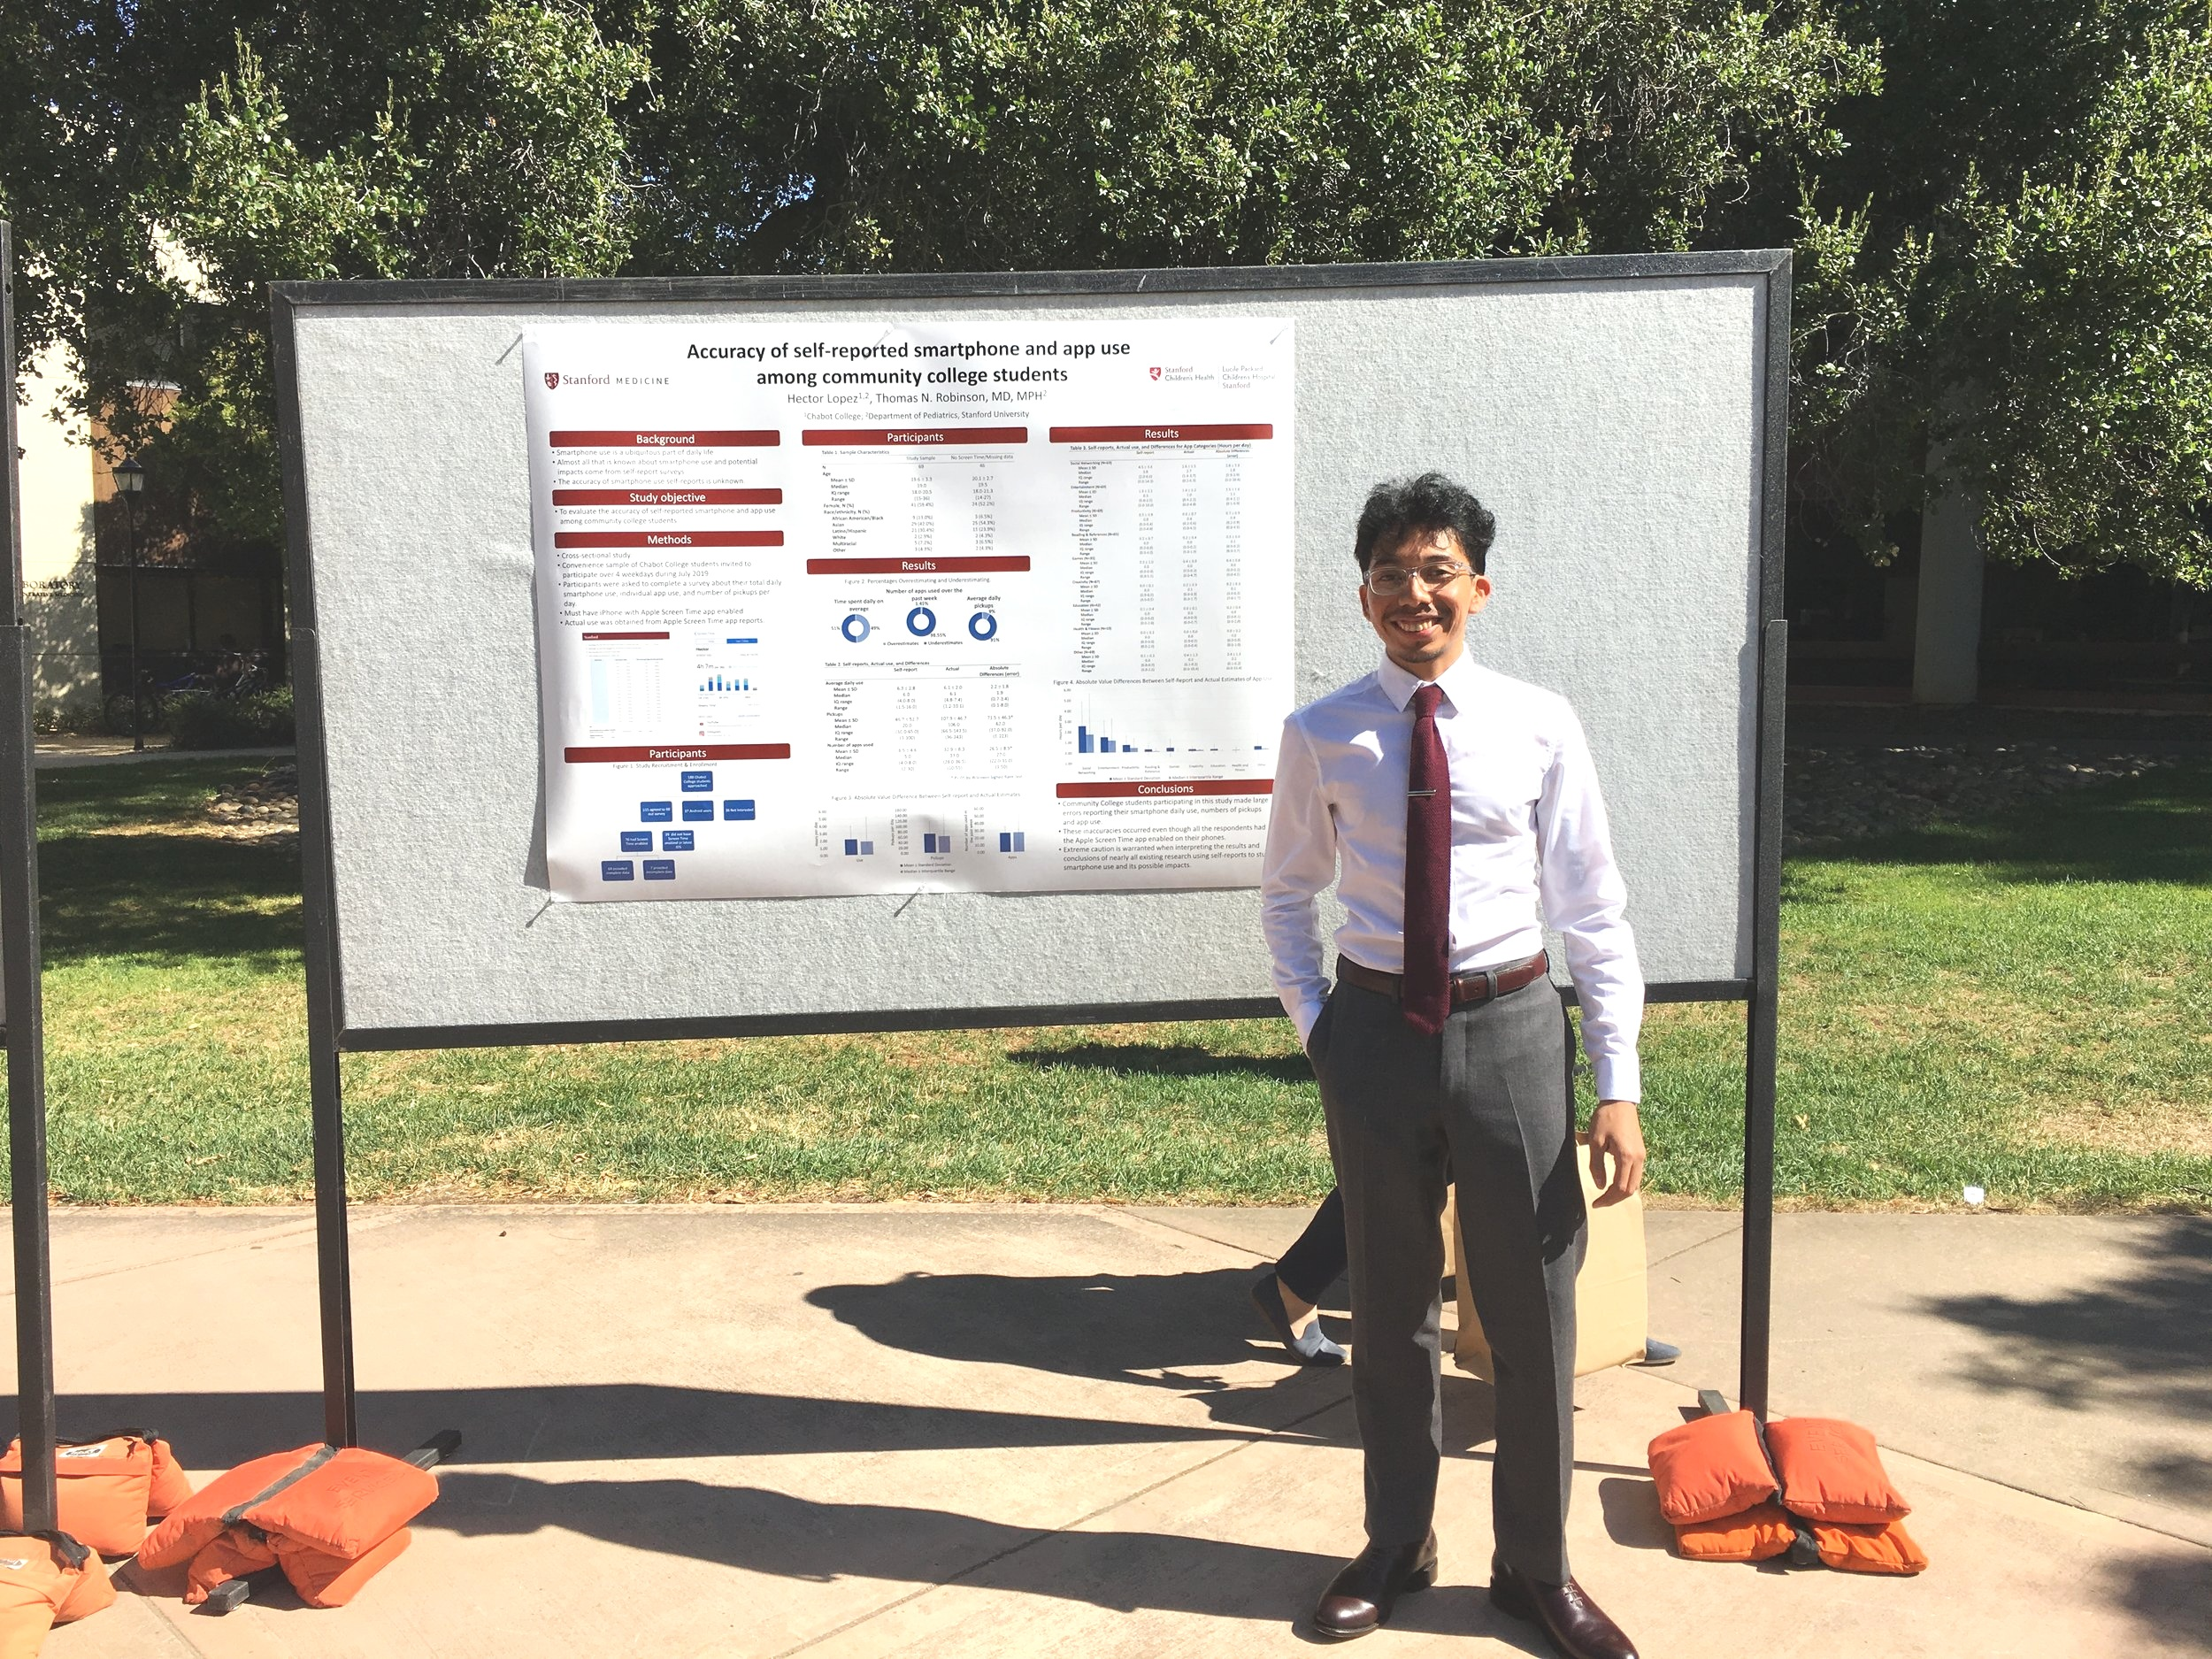 Hector L. - Congratulations to one of our YES youth, Hector Lopez! He graduated from the Stanford University 2019 Summer Research Experience for Community College Students program this summer. We are extremely proud of you Hector! Keep working hard, keep persevering, and continue to follow your dreams!